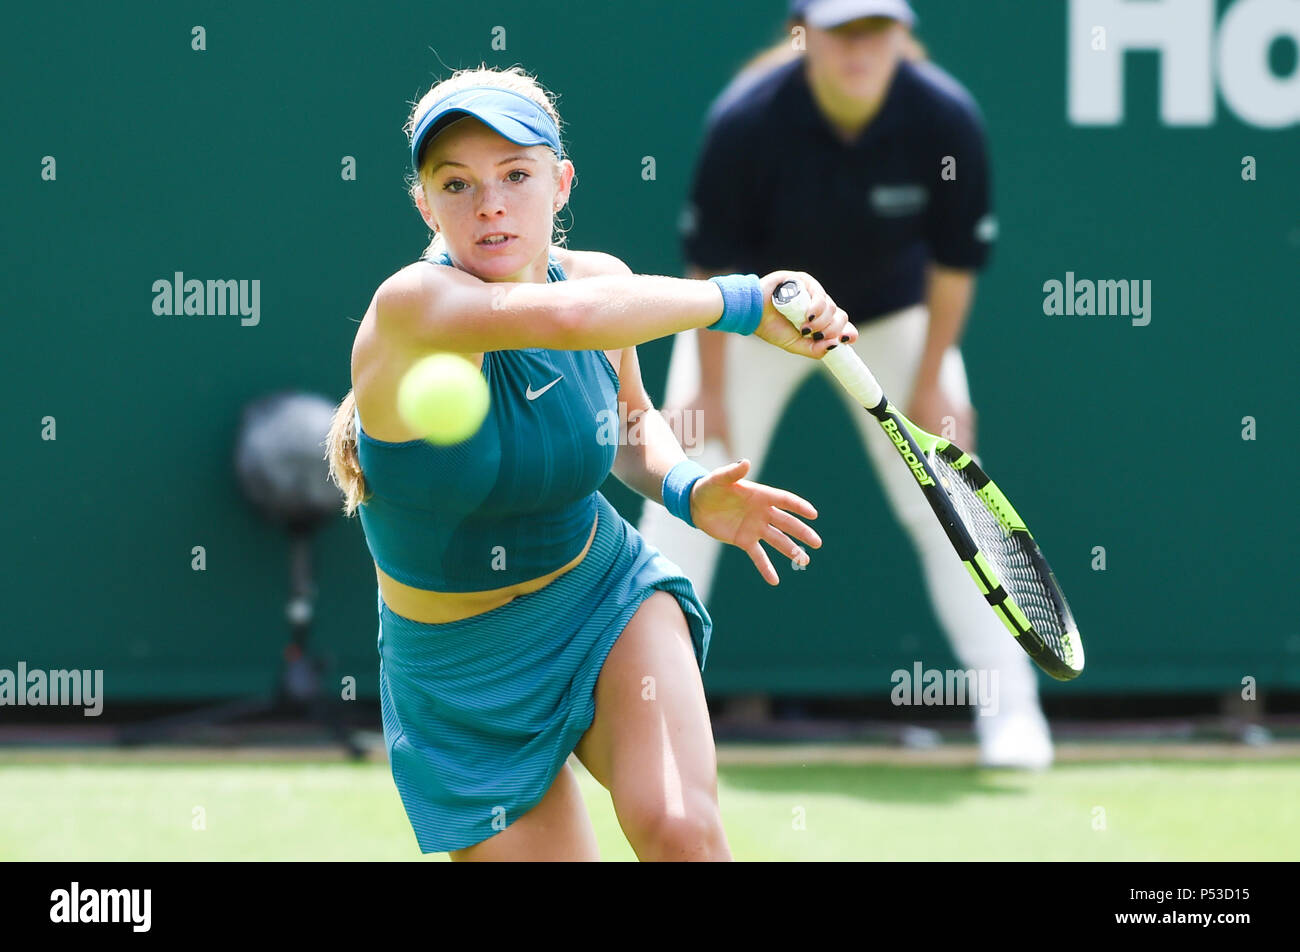 Katie Swan of Great Britain plays a shot in her first round match against Danielle Collins of USA during the Nature Valley International tennis tournament at Devonshire Park in Eastbourne East Sussex UK. 24 June 2018 Stock Photo